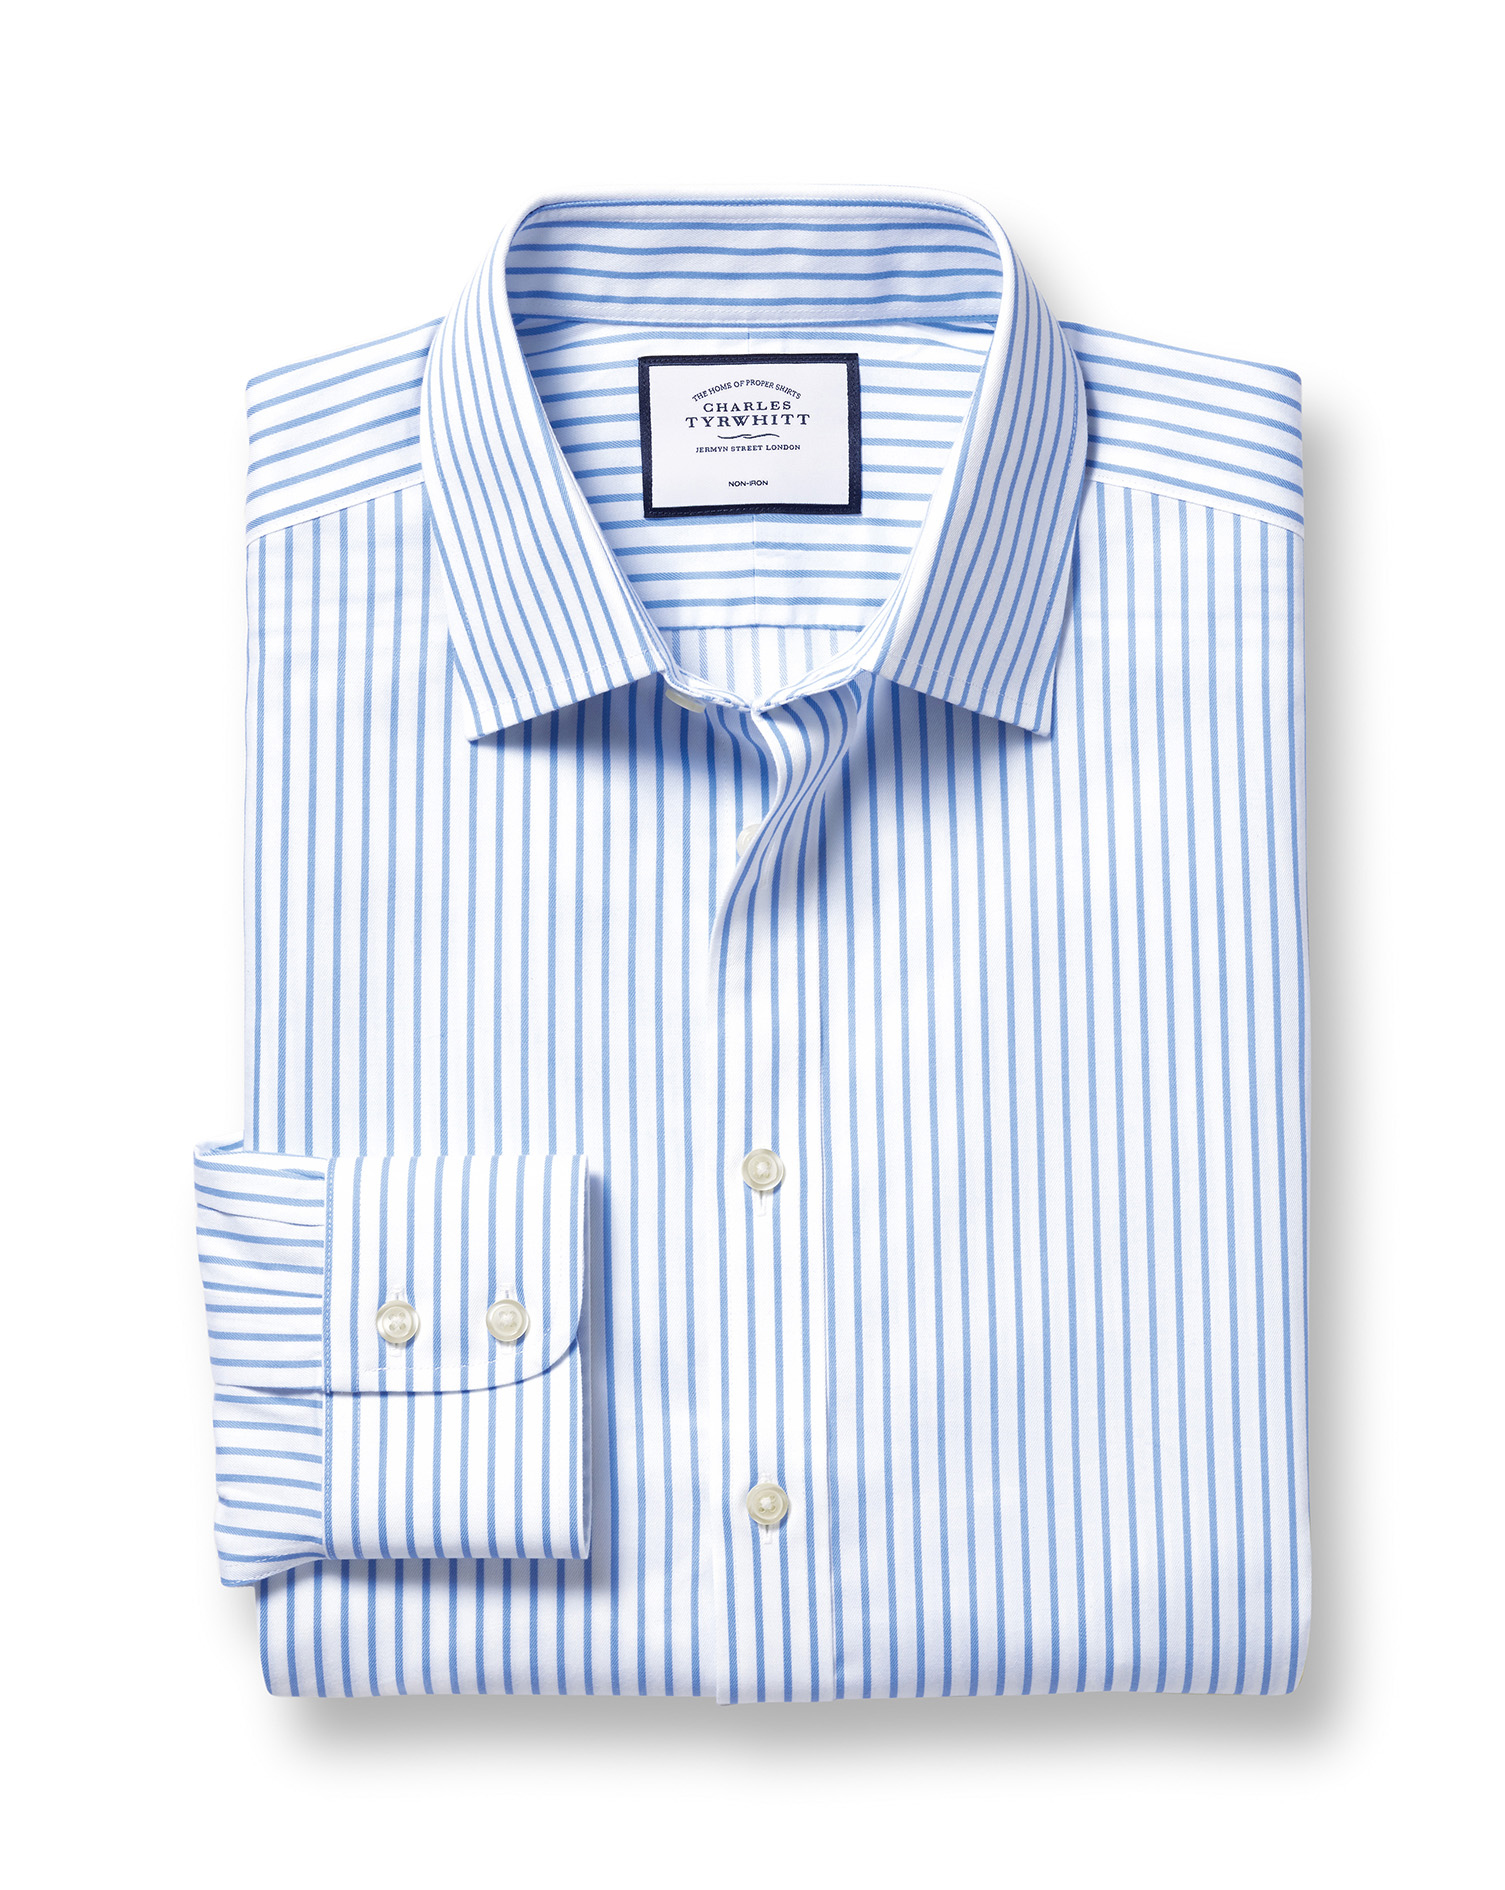 Slim Fit Non-Iron Twill White and Sky Blue Stripe Cotton Formal Shirt Double Cuff Size 15/33 by Char